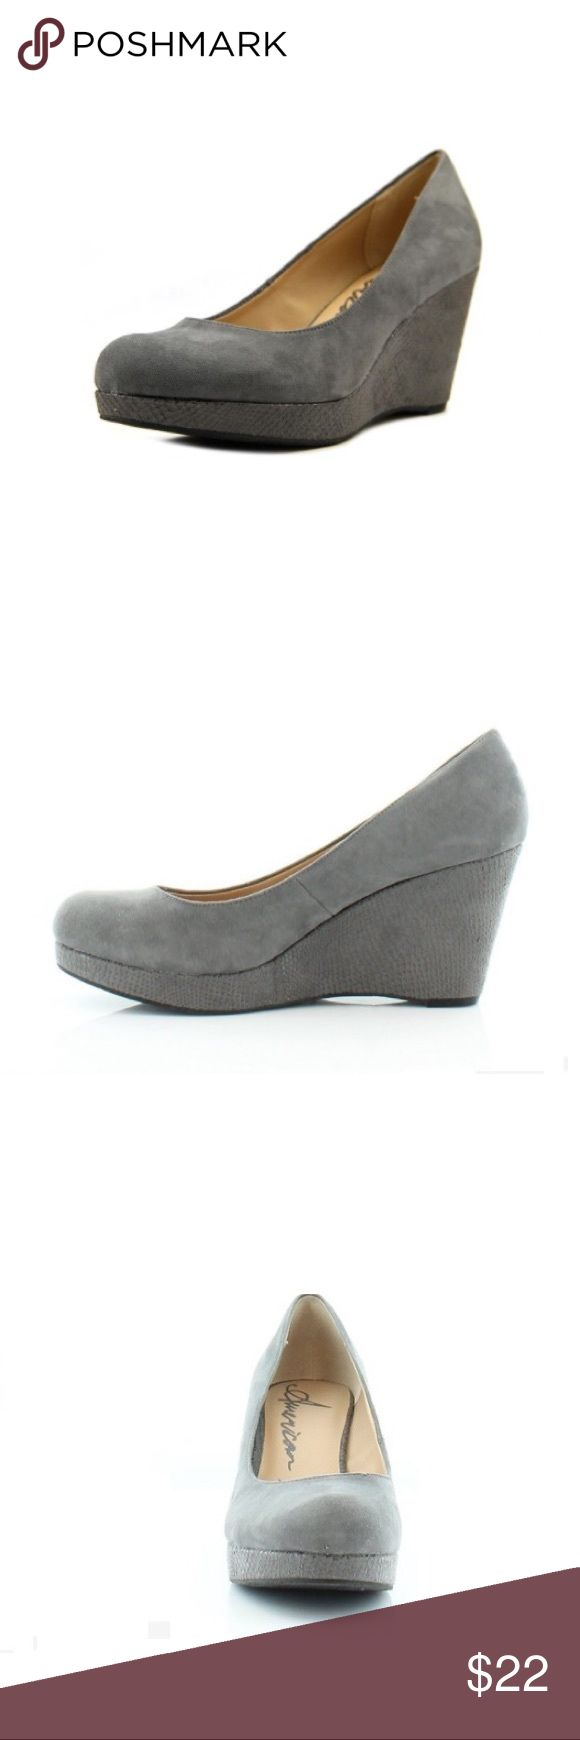 """American Rag gray wedges, like new American Rag gray faux suede wedges in original box. Negligible wear on soles, otherwise like new. 3 1/2"""" heel. Size 9 1/2. American Rag Shoes Wedges"""